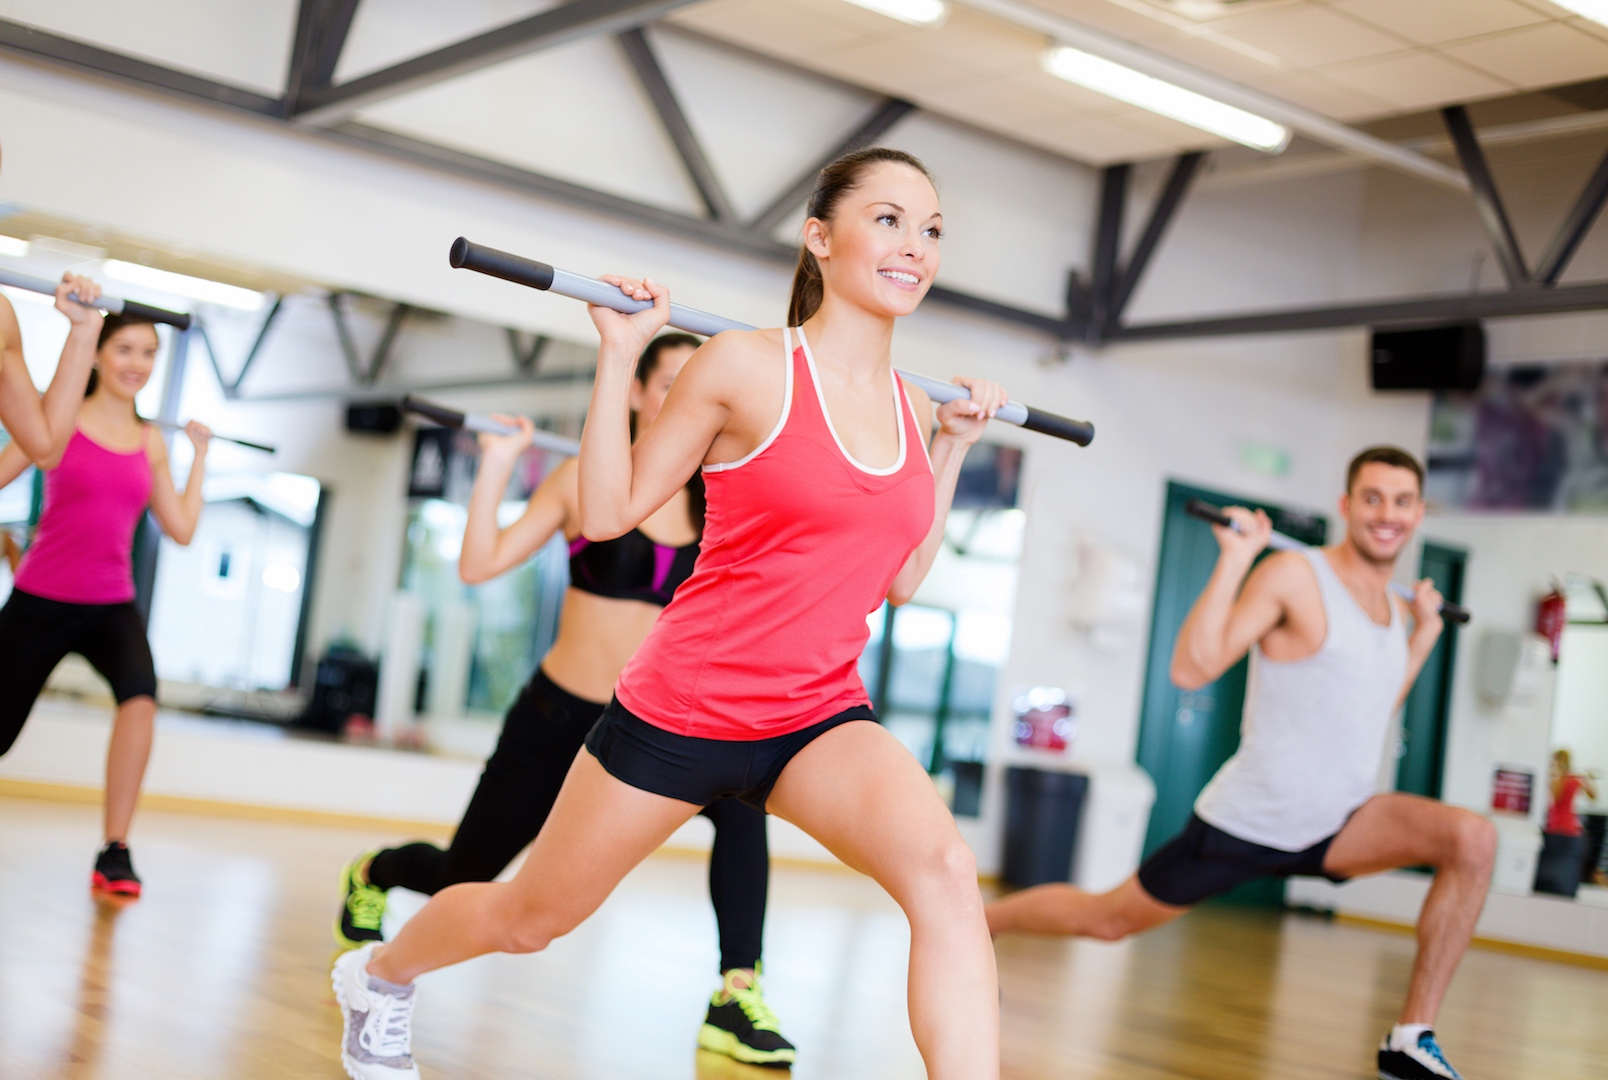 Schonend fit mit Low-Impact-Training